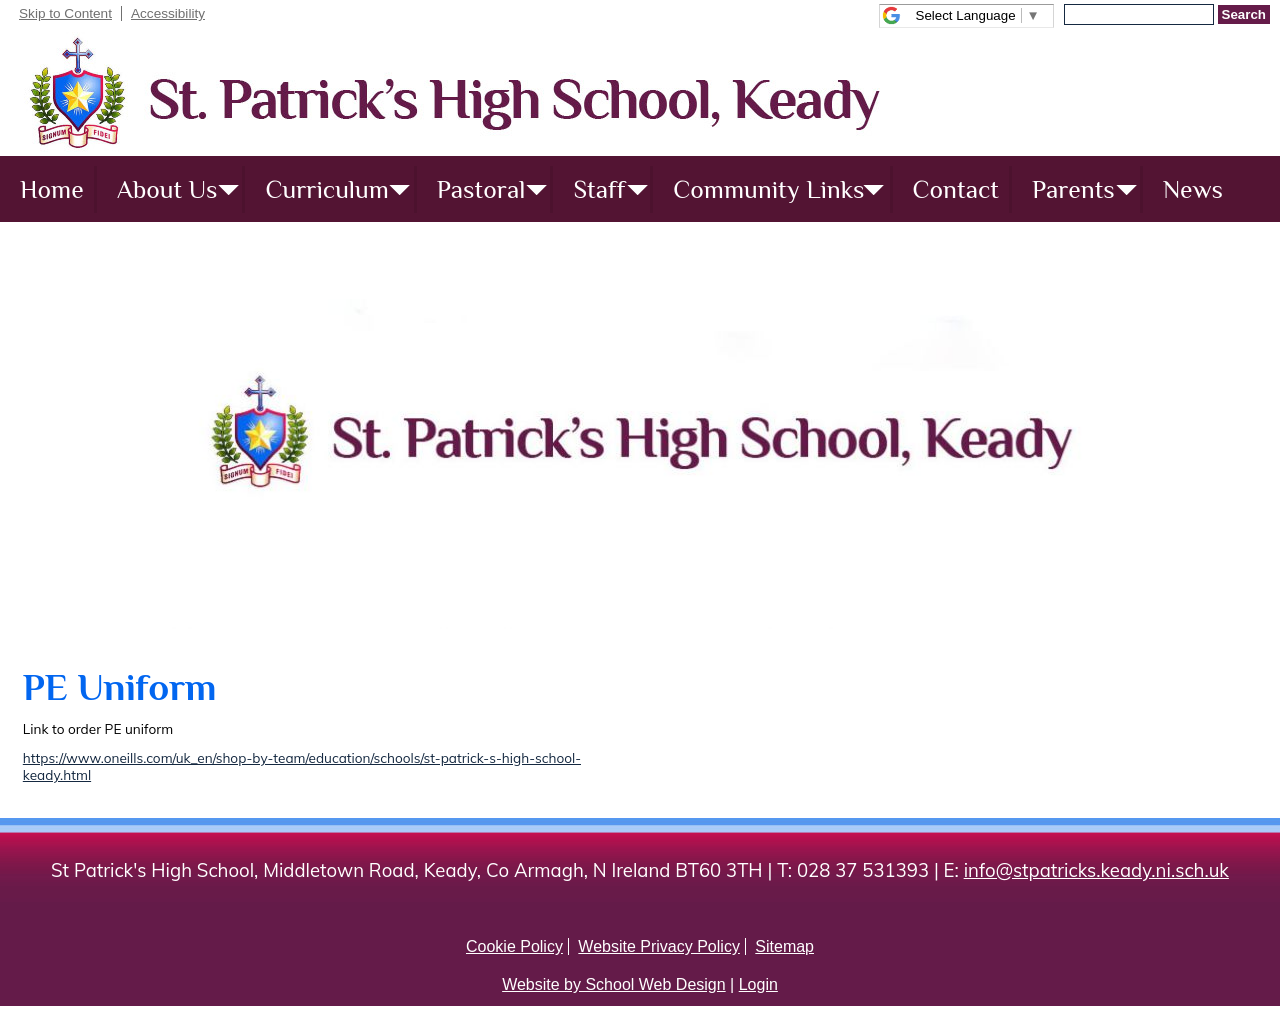 St. Patrick's High School Keady